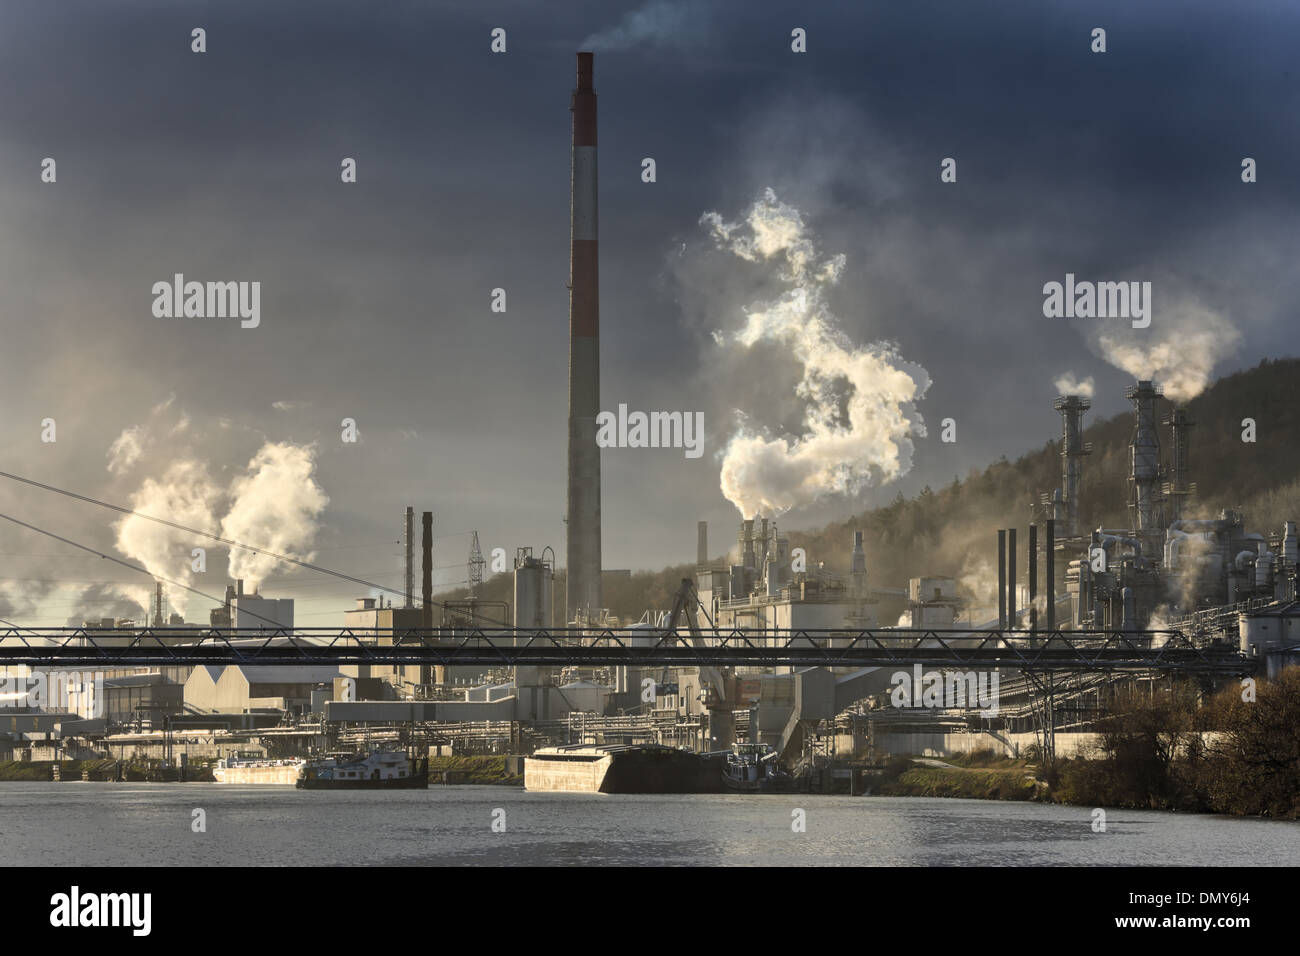 Chemical industries generating pollution. Some chimneys with smoke. Landscape and nobody - Stock Image